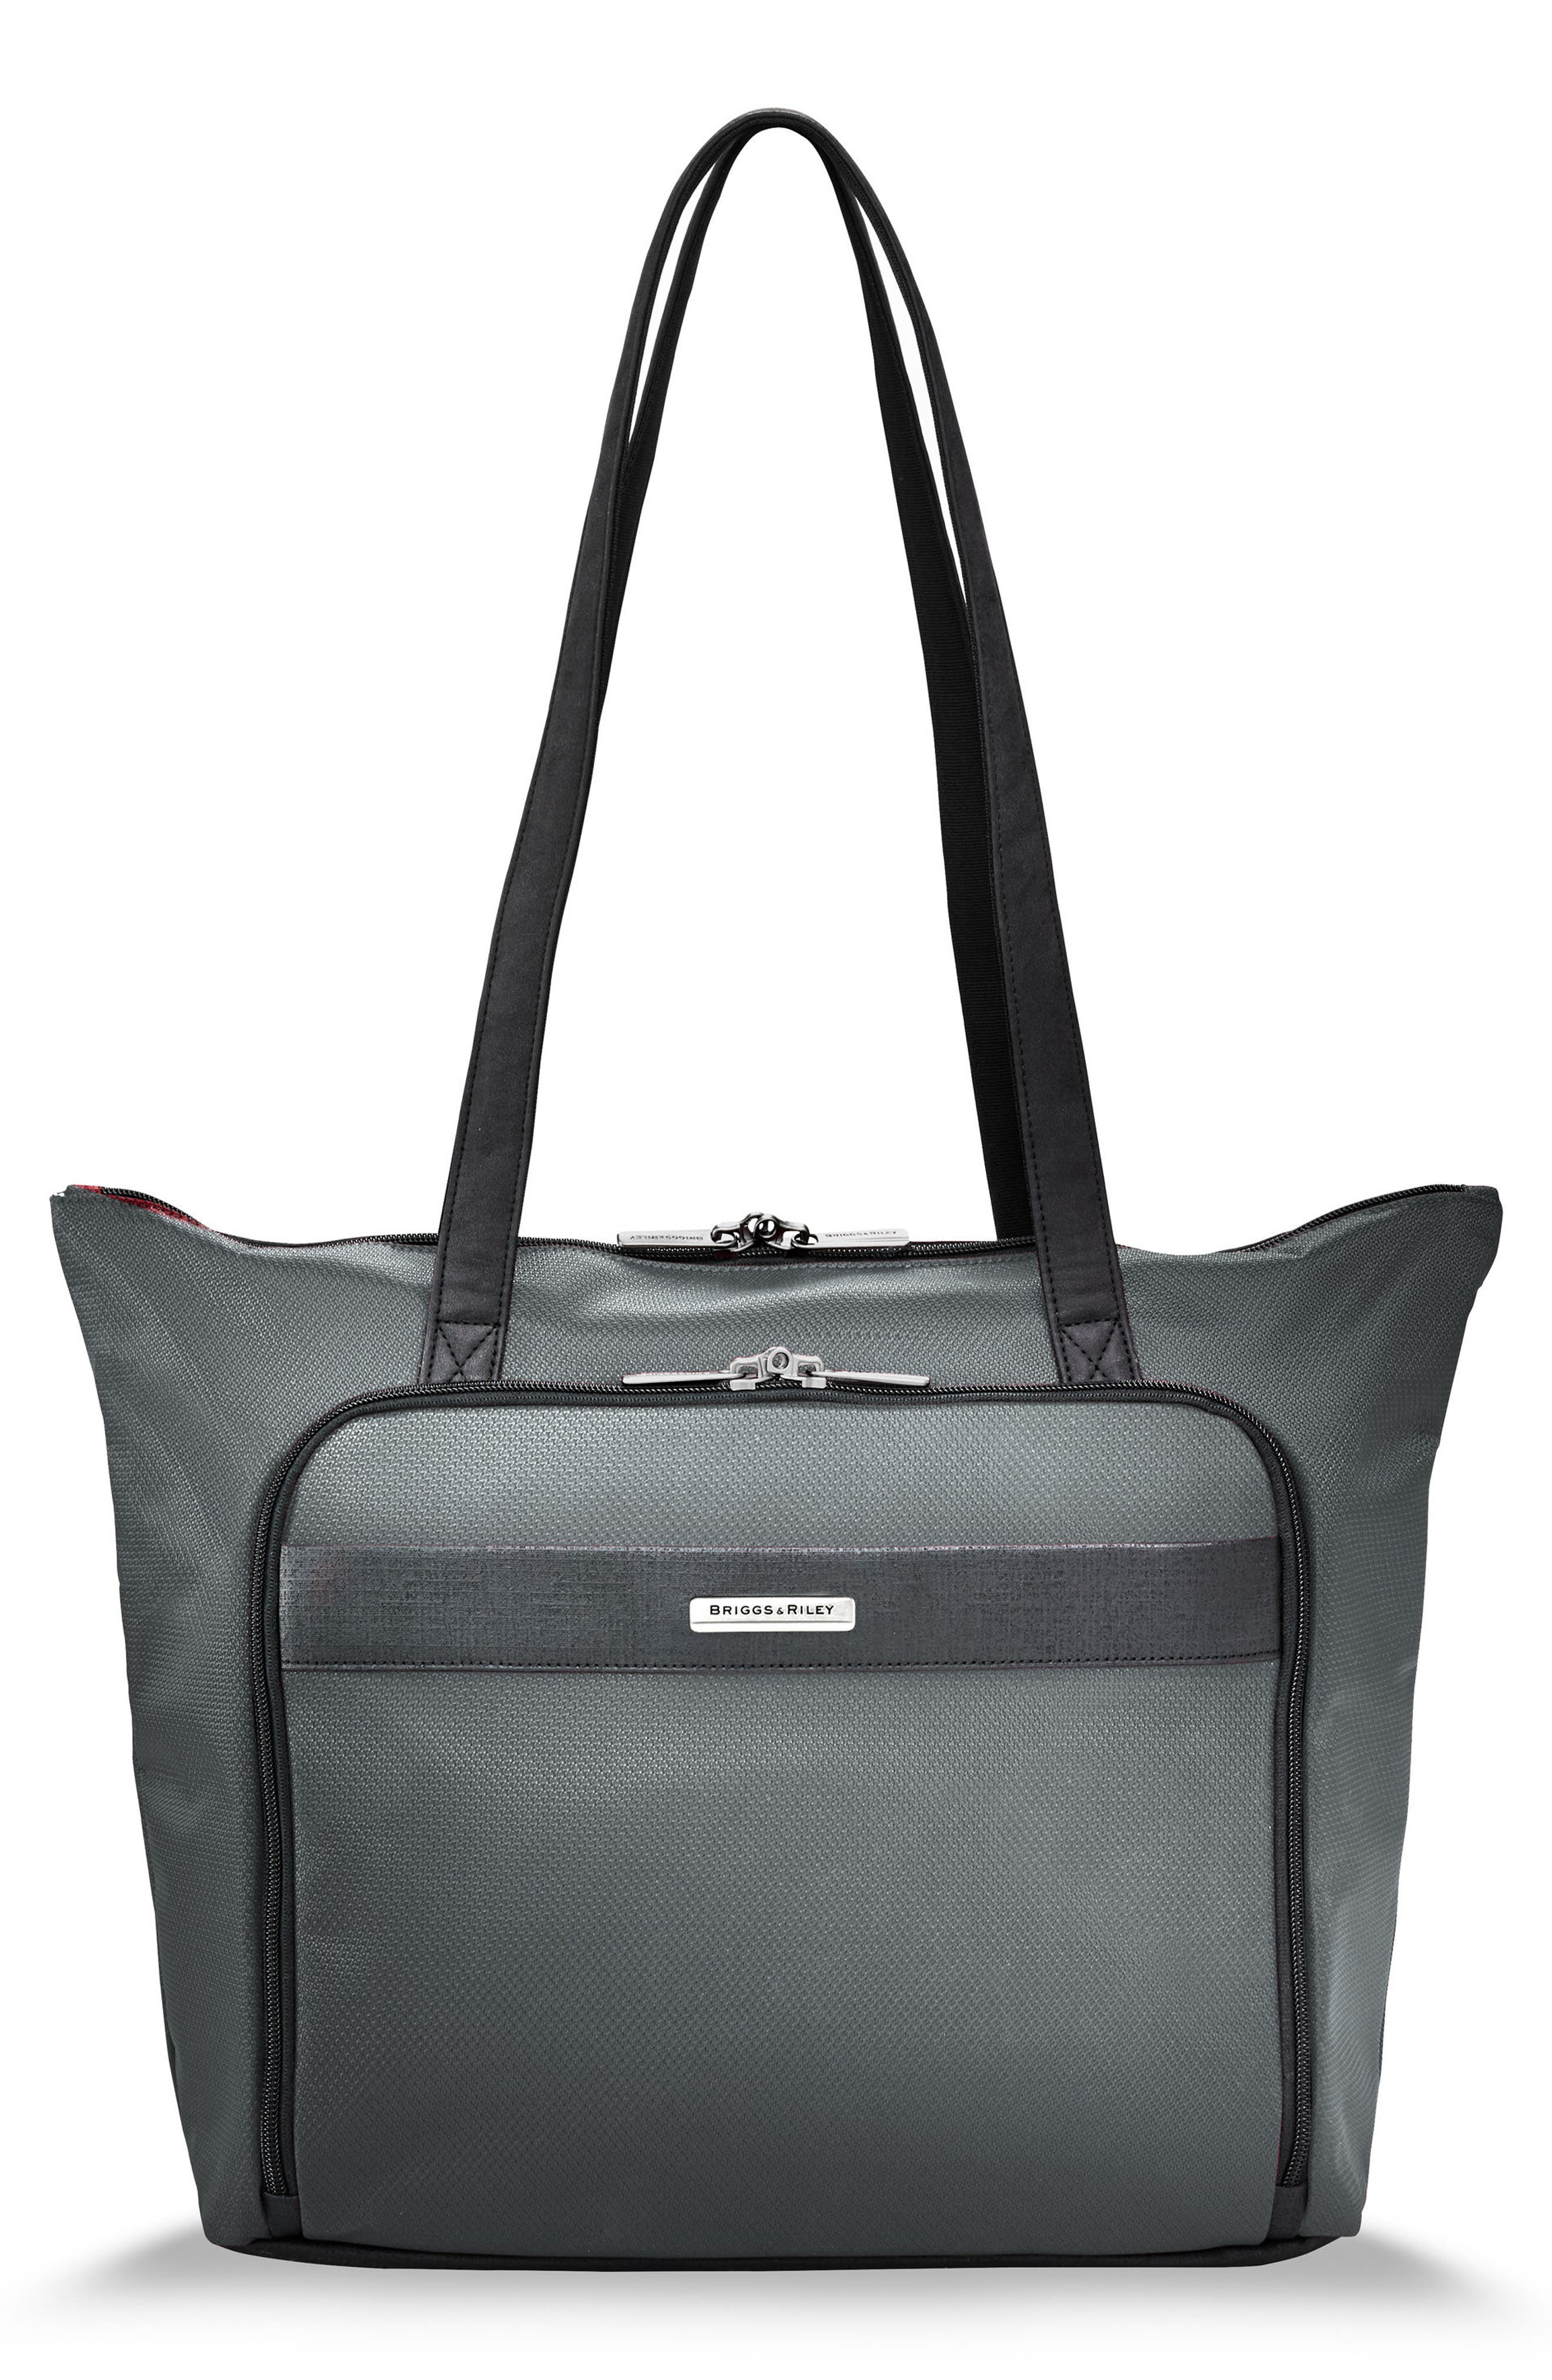 BRIGGS & RILEY,                             Transcend 400 Tote Bag,                             Main thumbnail 1, color,                             SLATE GREY